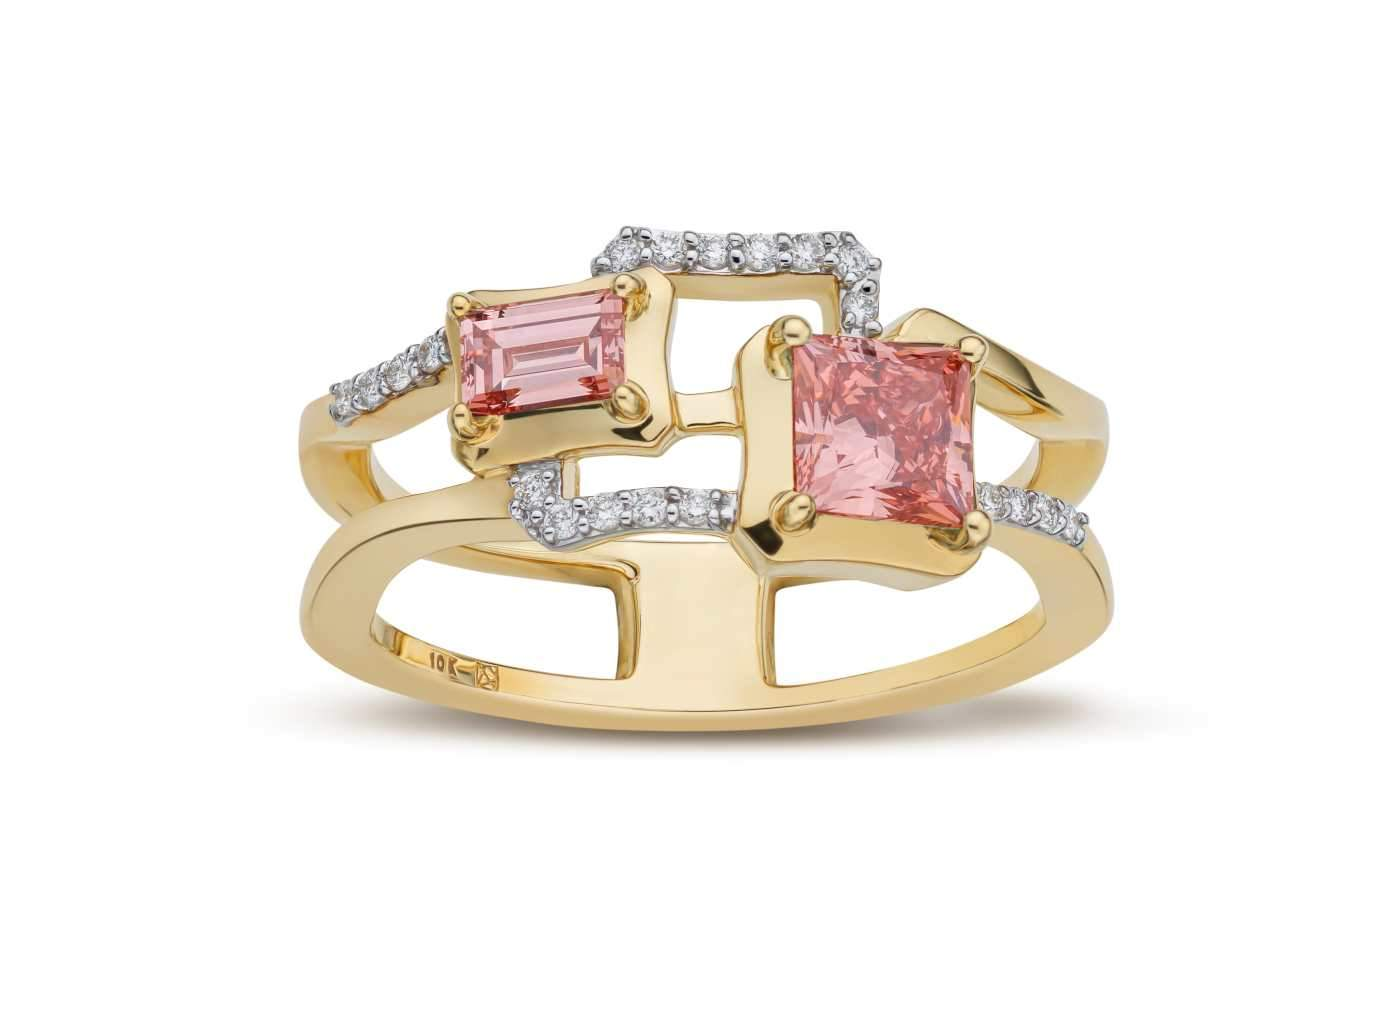 Front view of 2 Stone Frame work Ring with pink and white diamonds